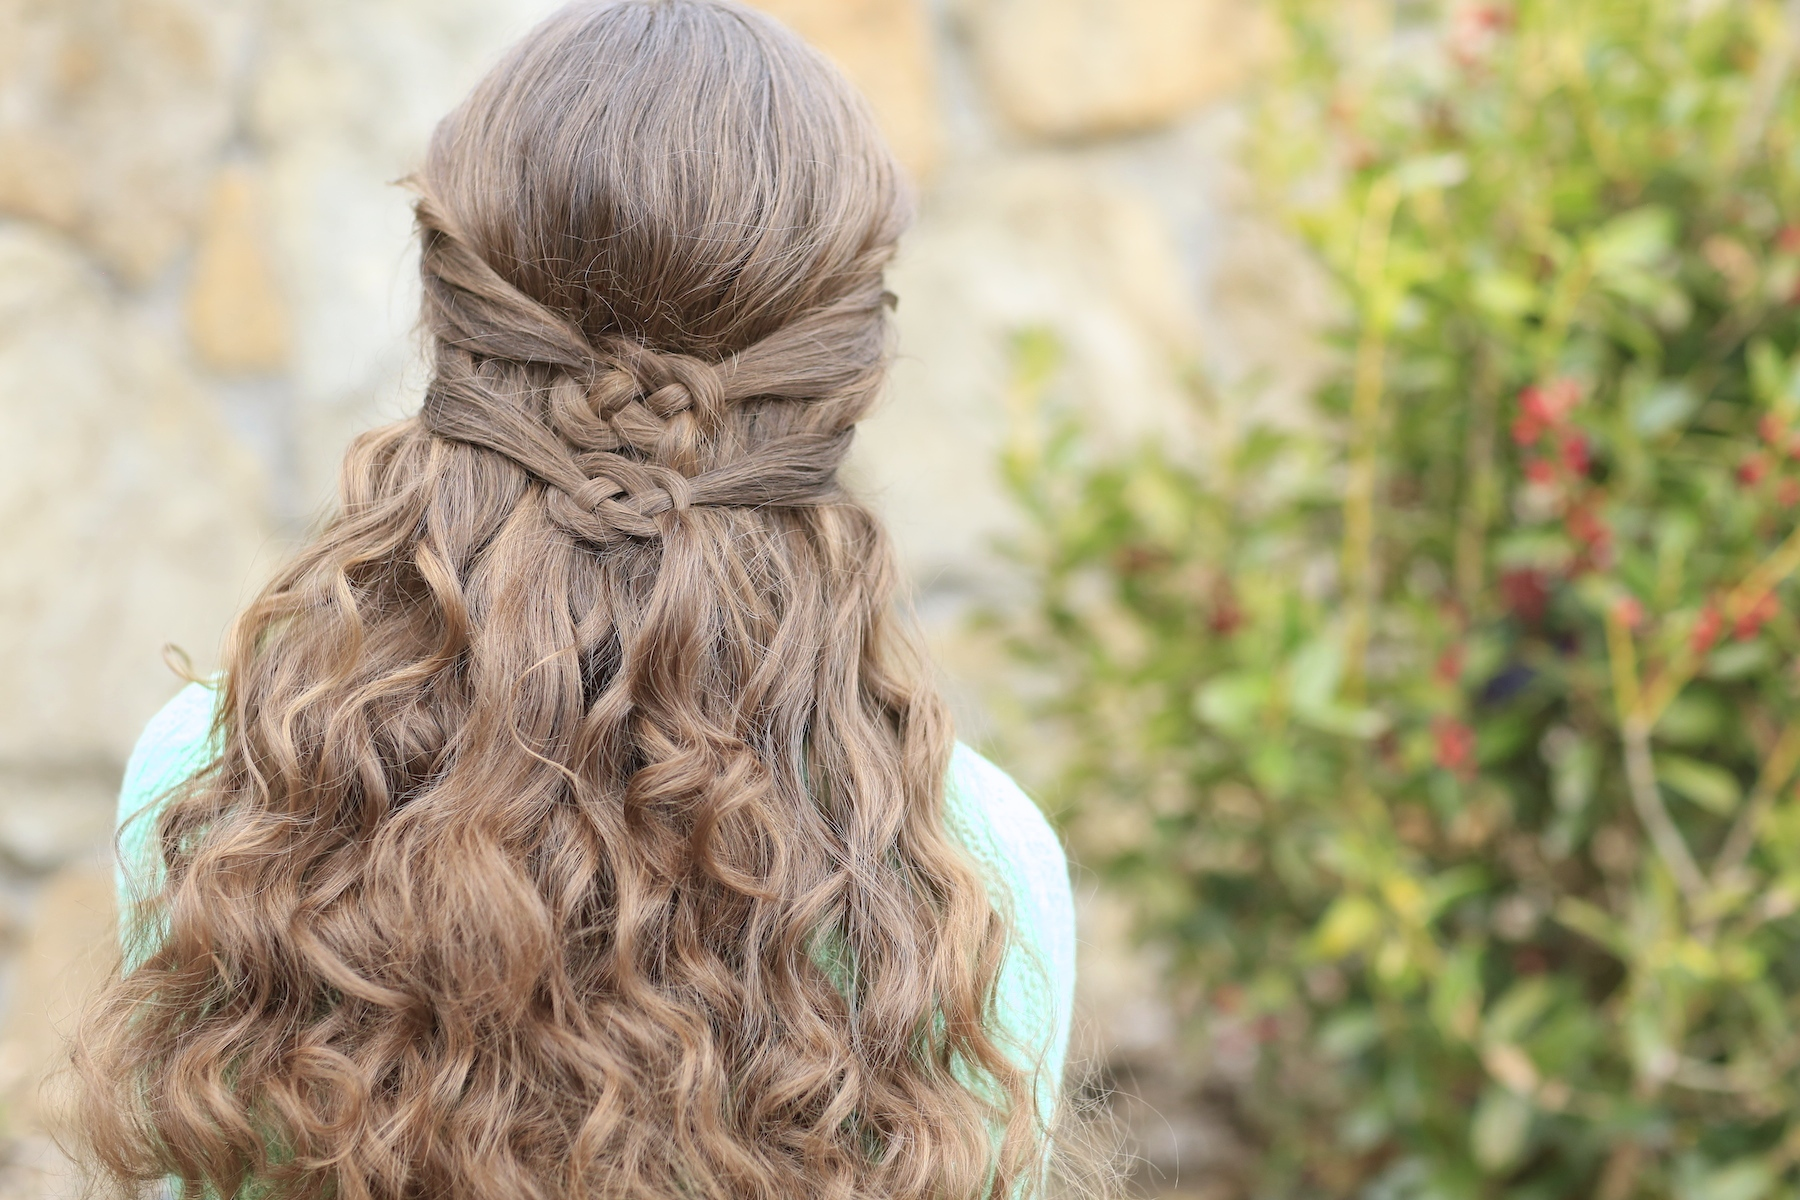 Hairstyles For Long Hair Knots : Ways to Wear a Celtic Knot St Patrick?s Day Hairstyles